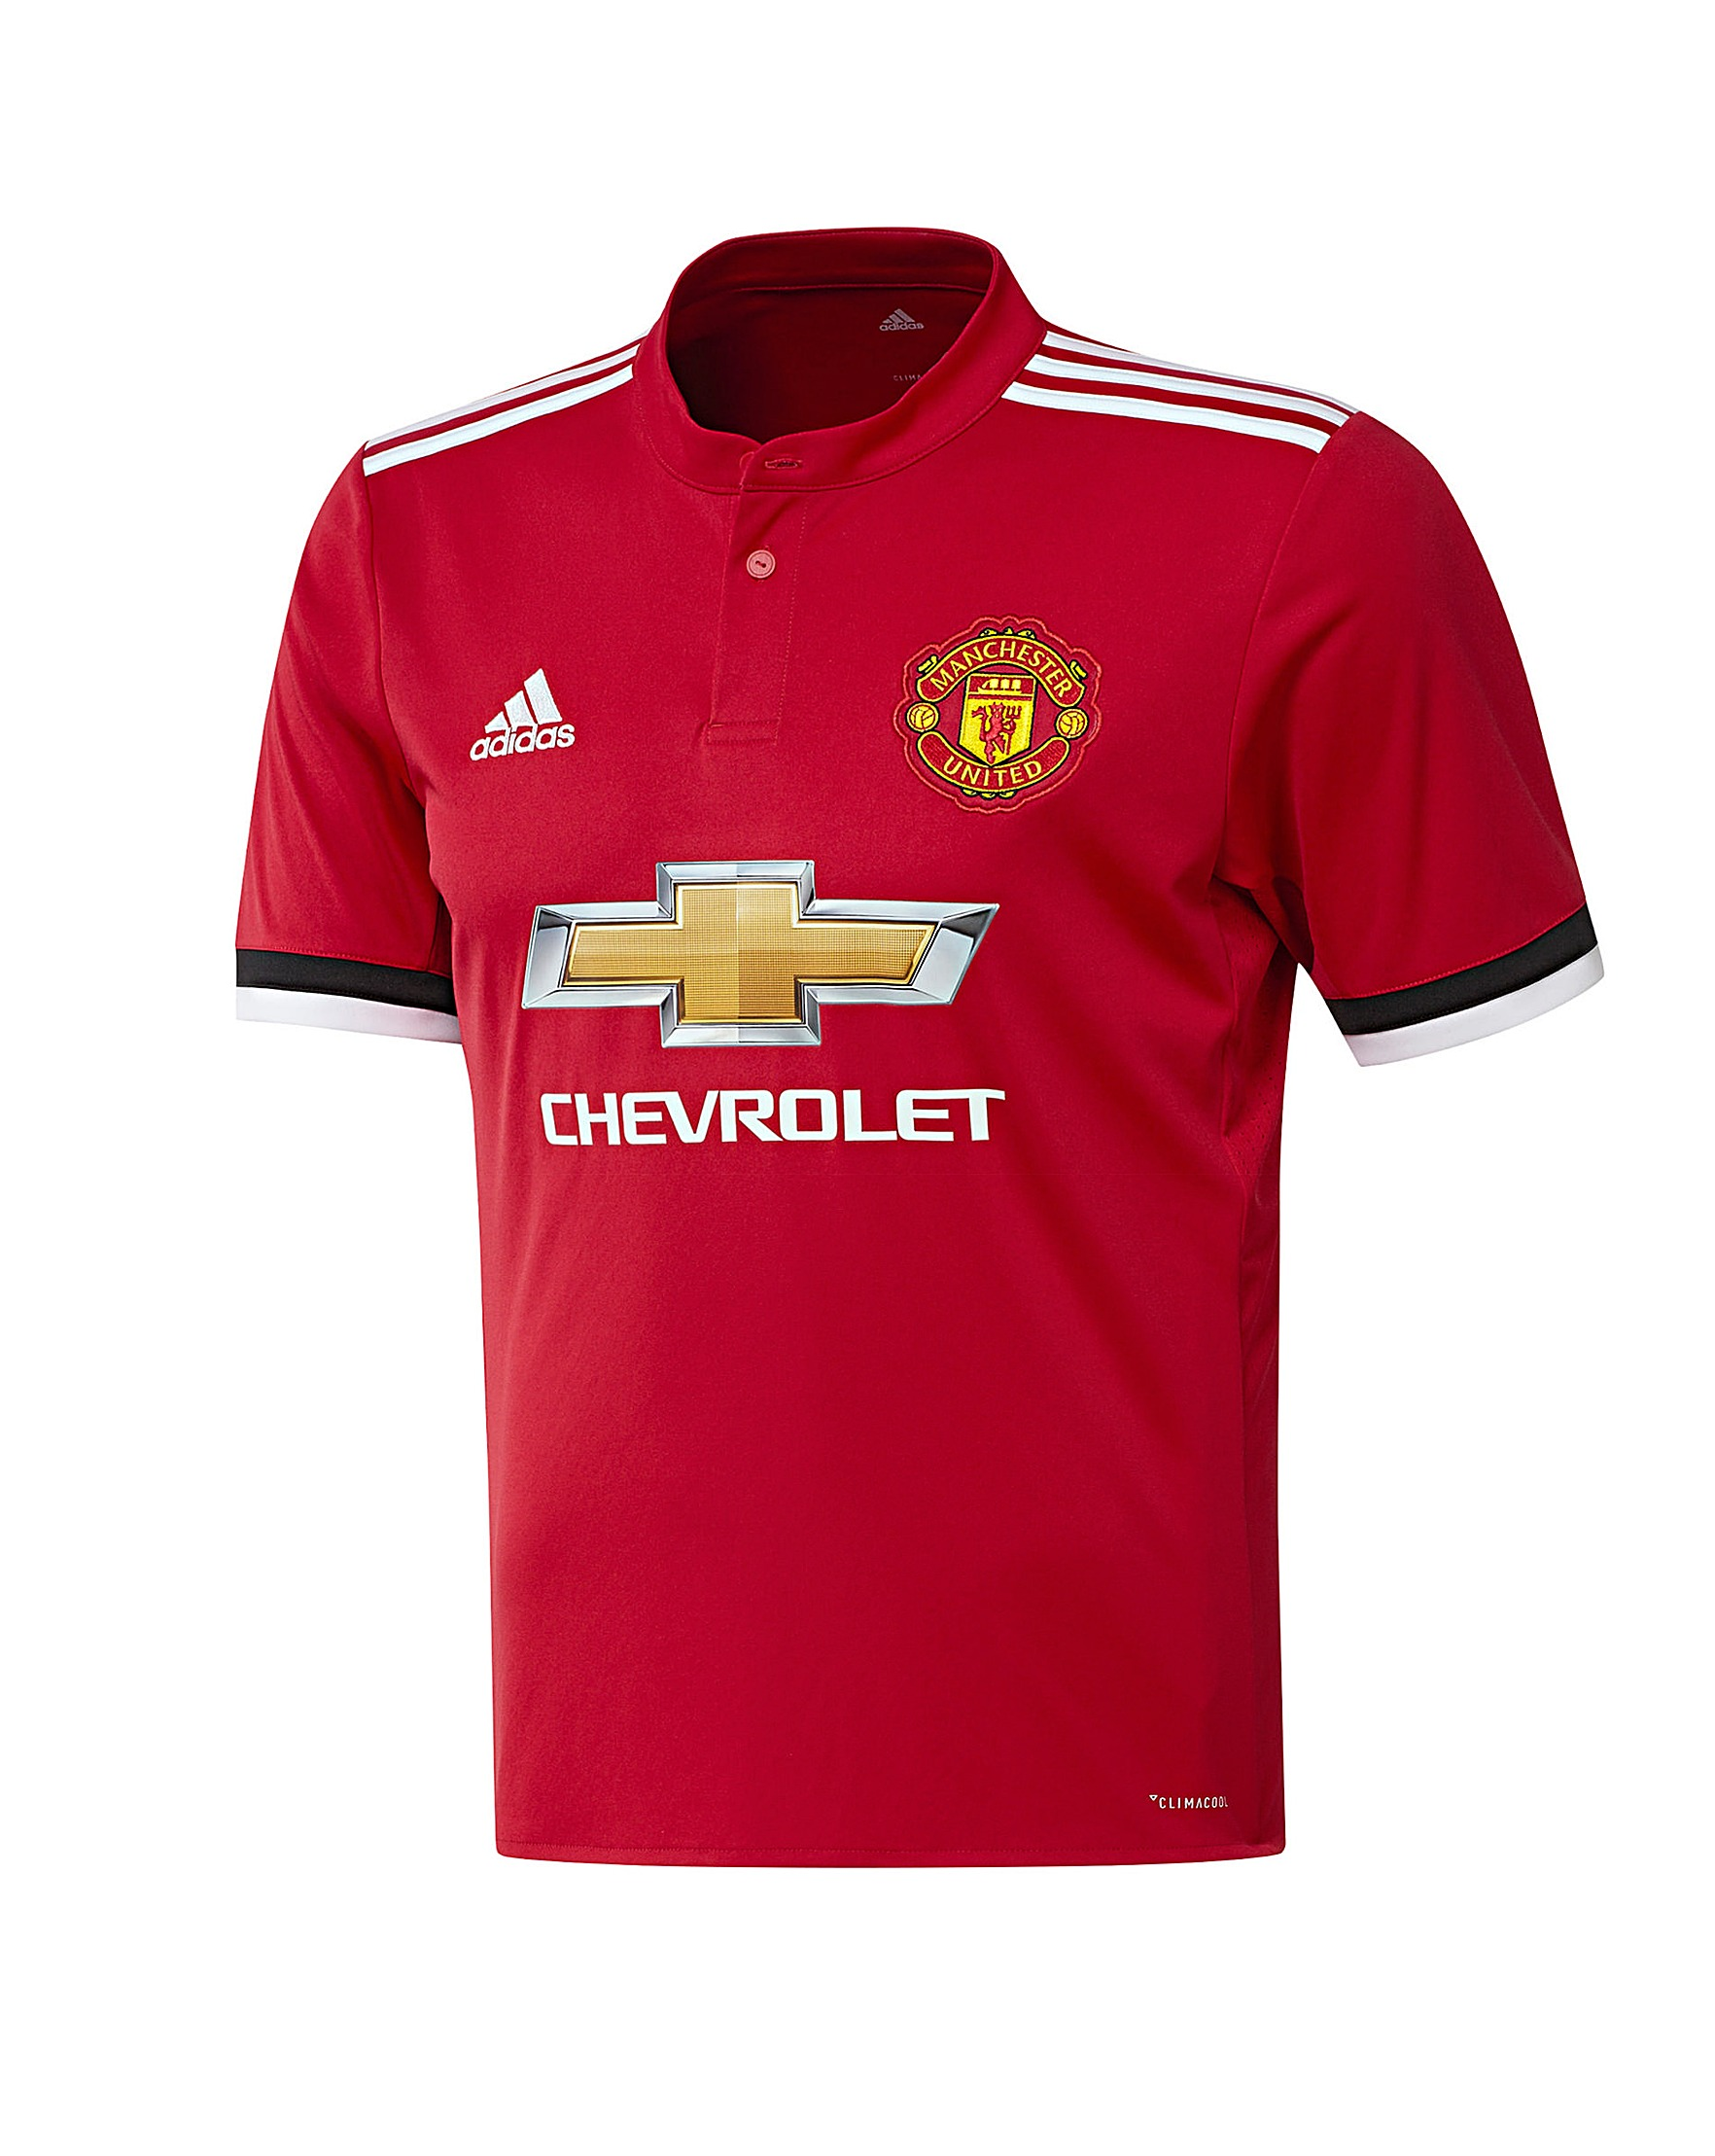 reputable site c80c8 80d17 Manchester United Replica Home Jersey